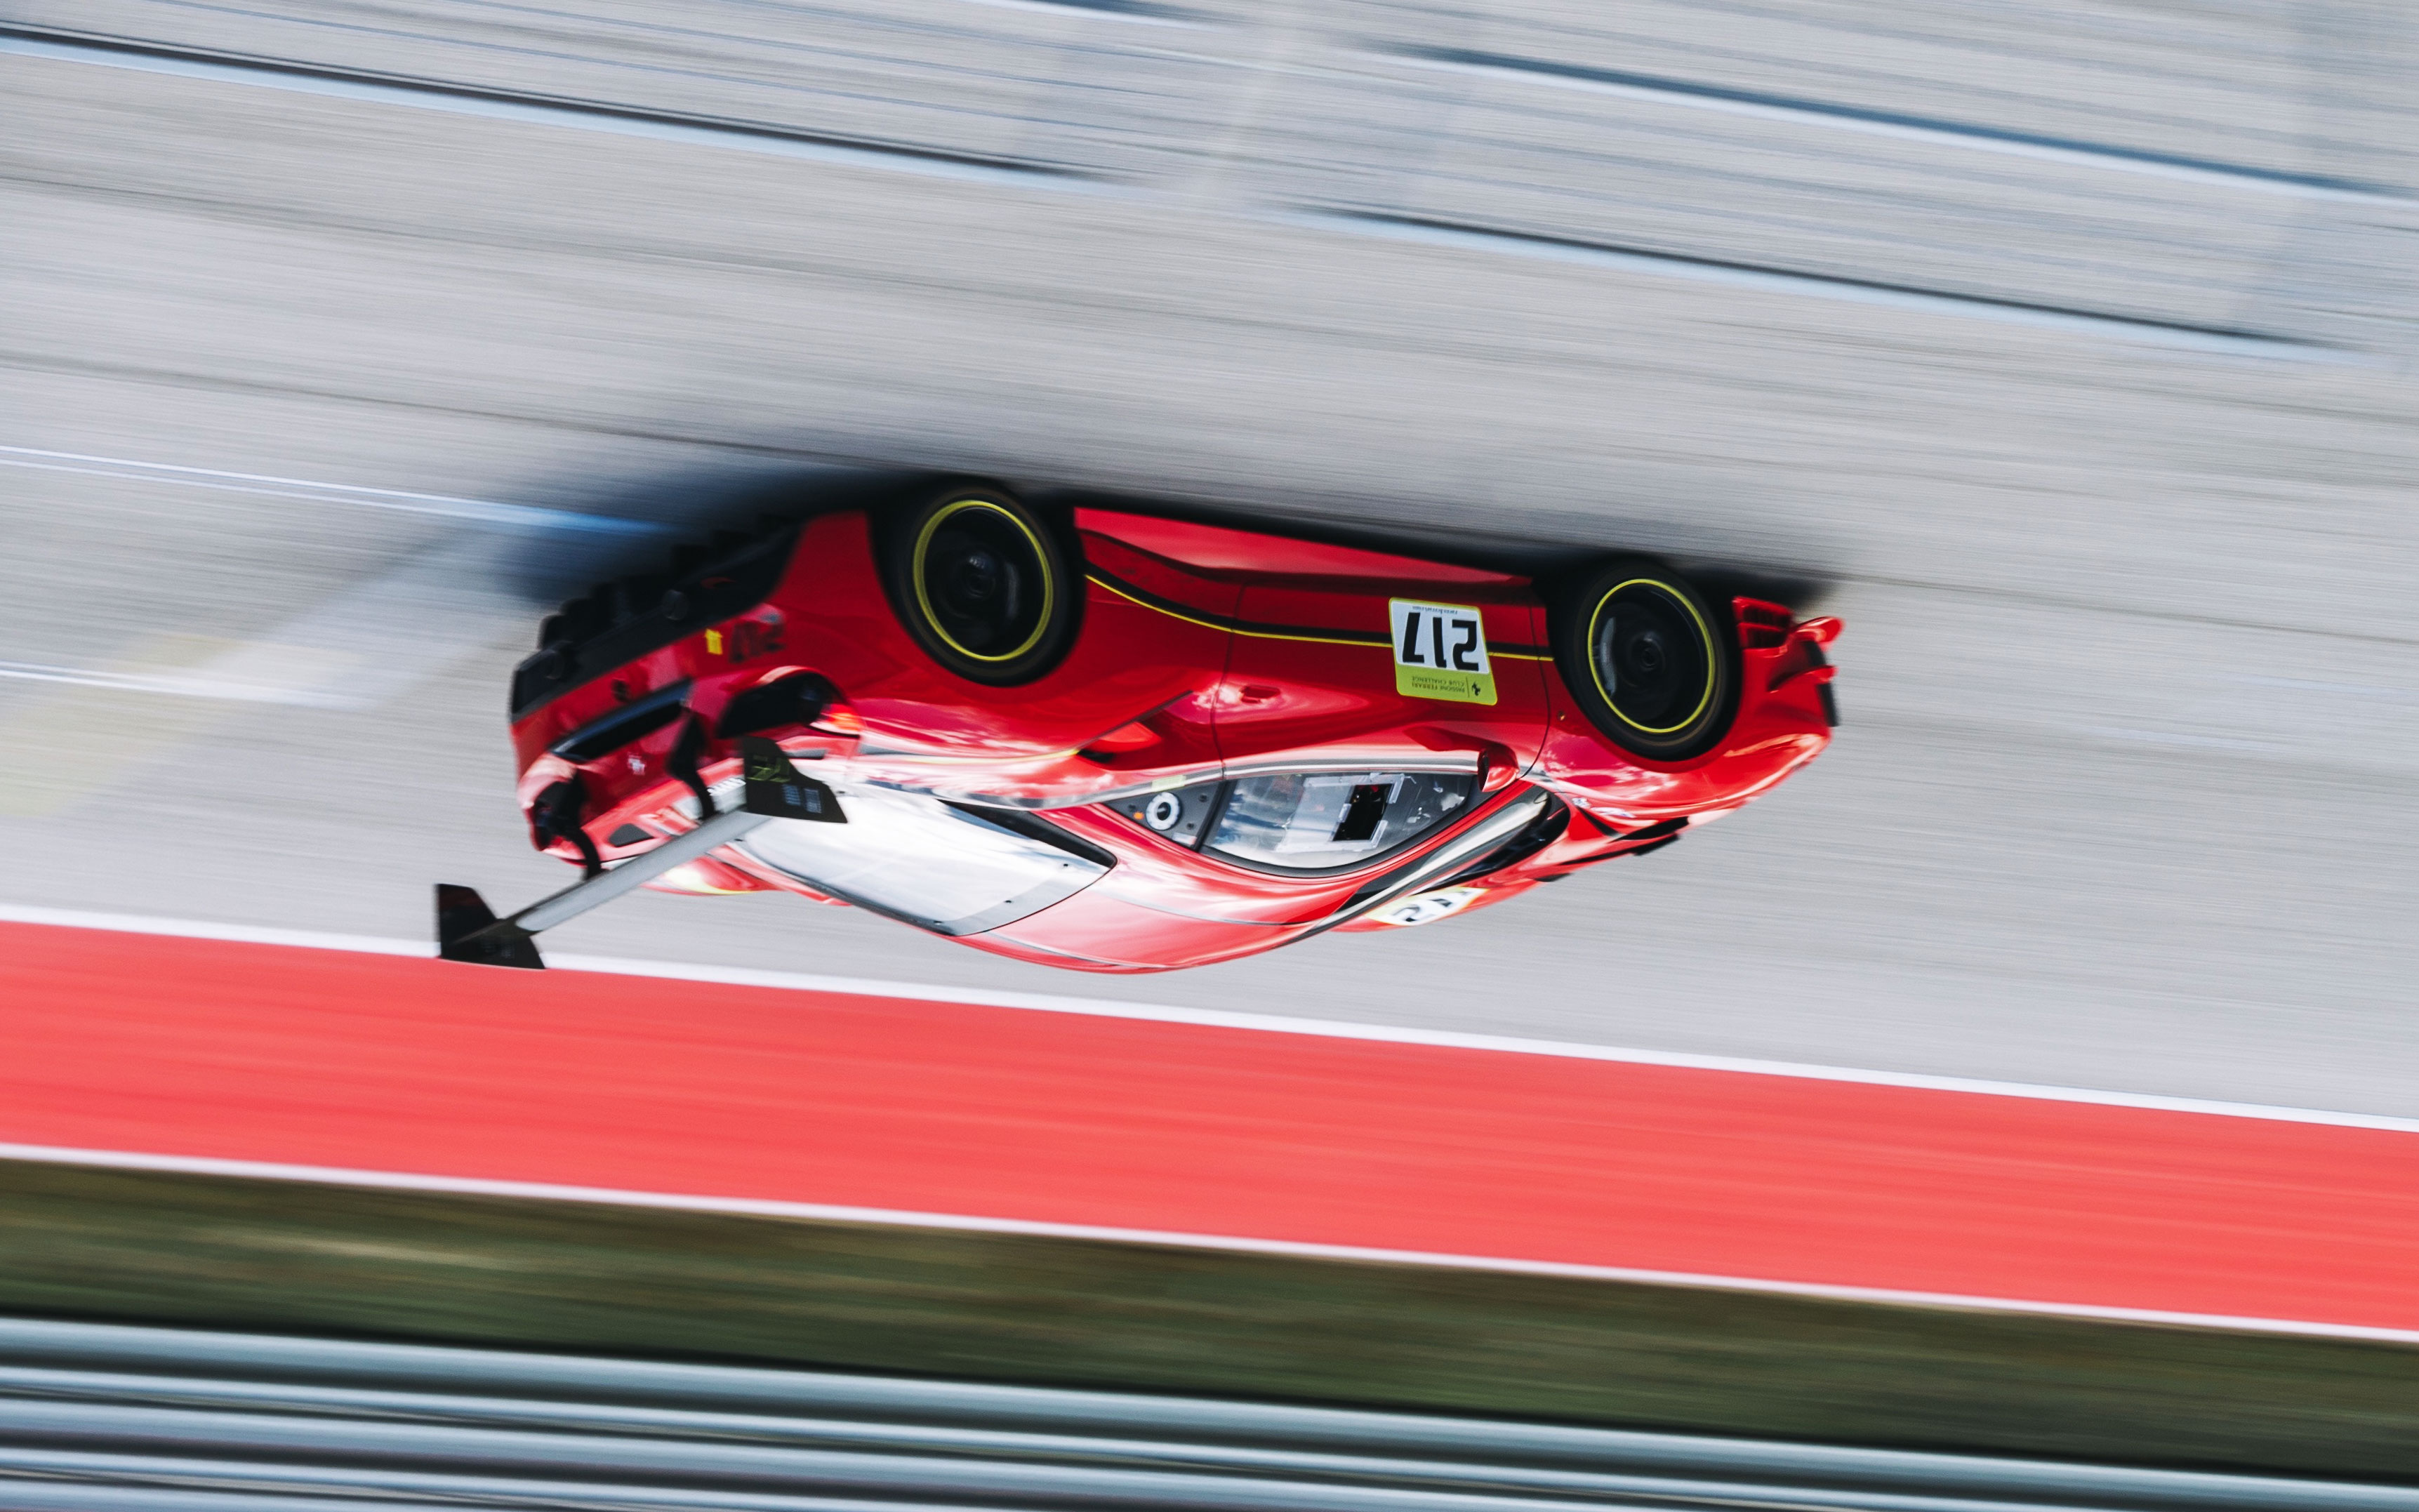 An image of a race-car on a track, rotated to appear upside-down.